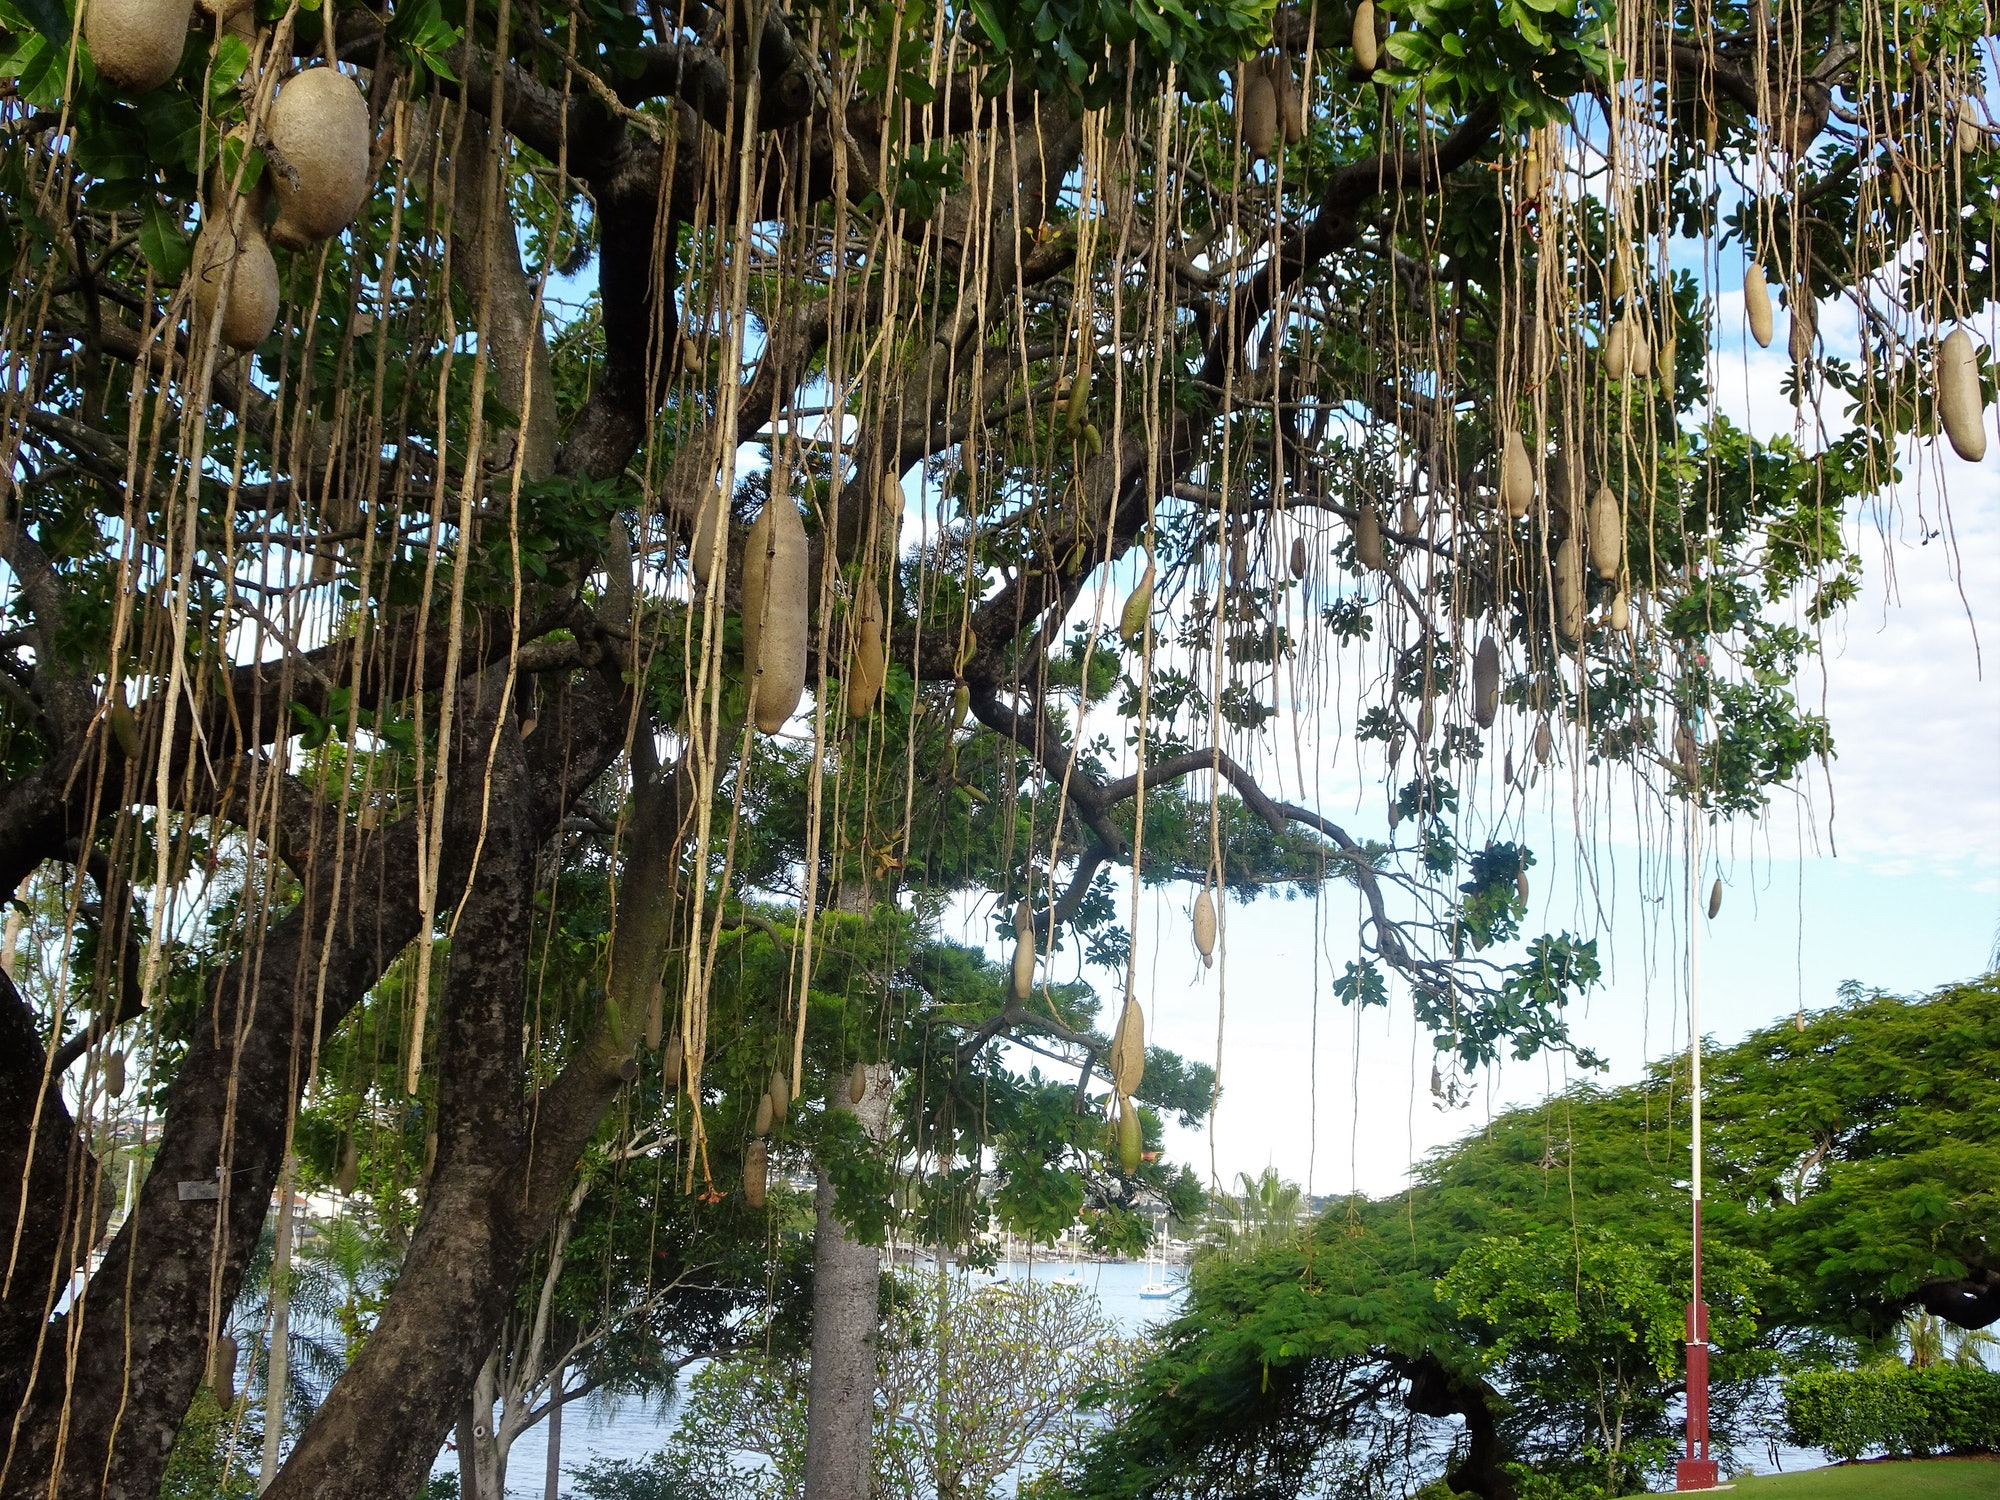 Brisbane. Sausage Tree in the gardens of Newstead House with the brisbane River in the background.  This unsual tropical tree is Kigelia africana.The sausage fruits can be two feet long. JPG